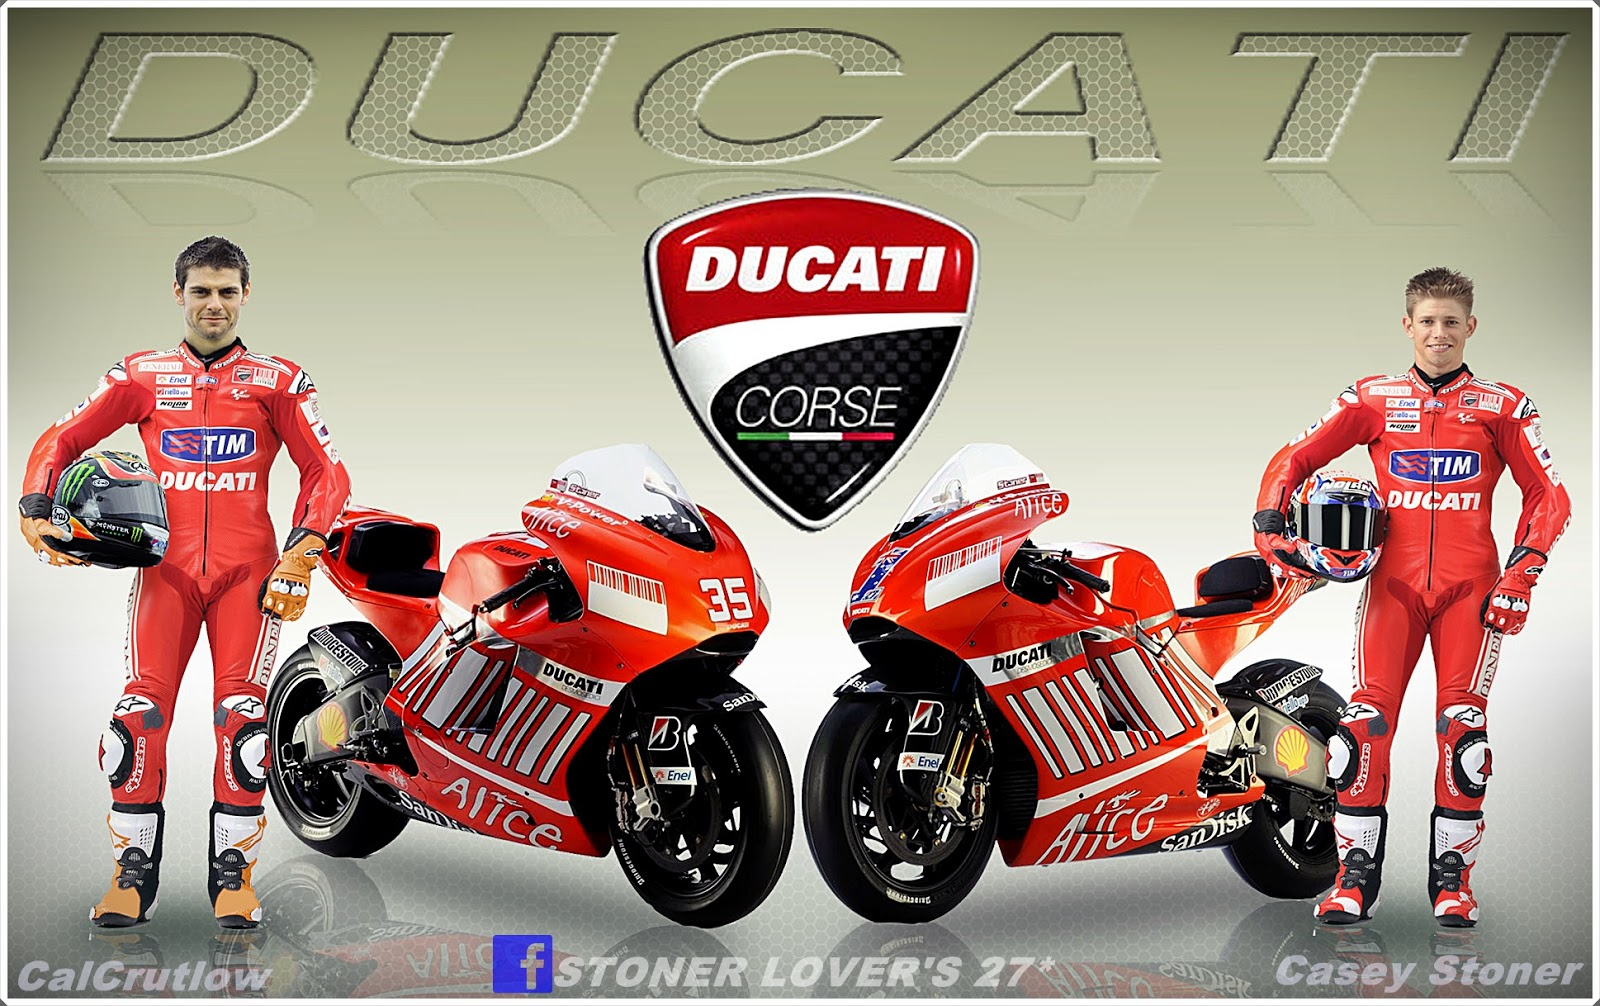 Redi Stoner Wallpaper Hd Calcrutchlow And Casey Stoner Ducati Team